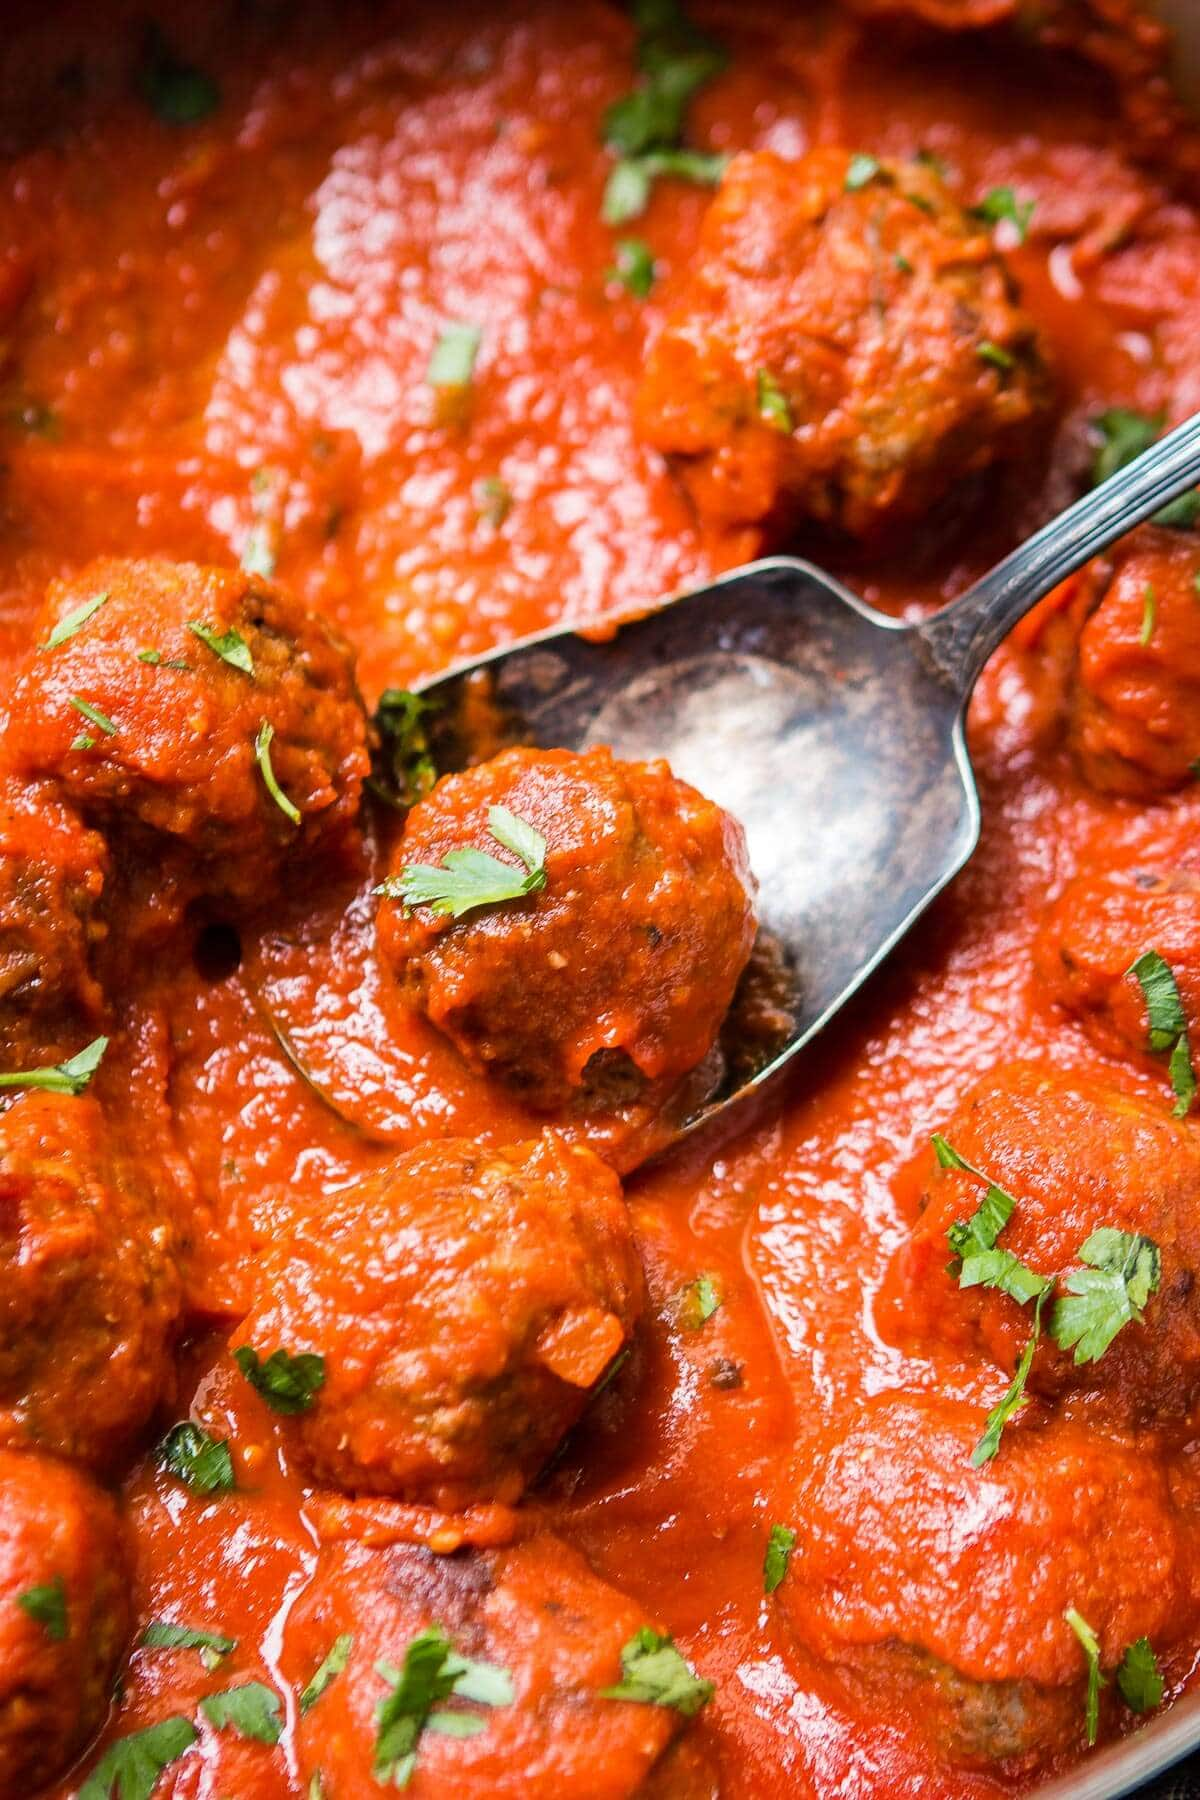 Meatballs are a great freezer meal idea. One of our favorites is freezer meal porcupine meatballs. The ingredients list is so easy!